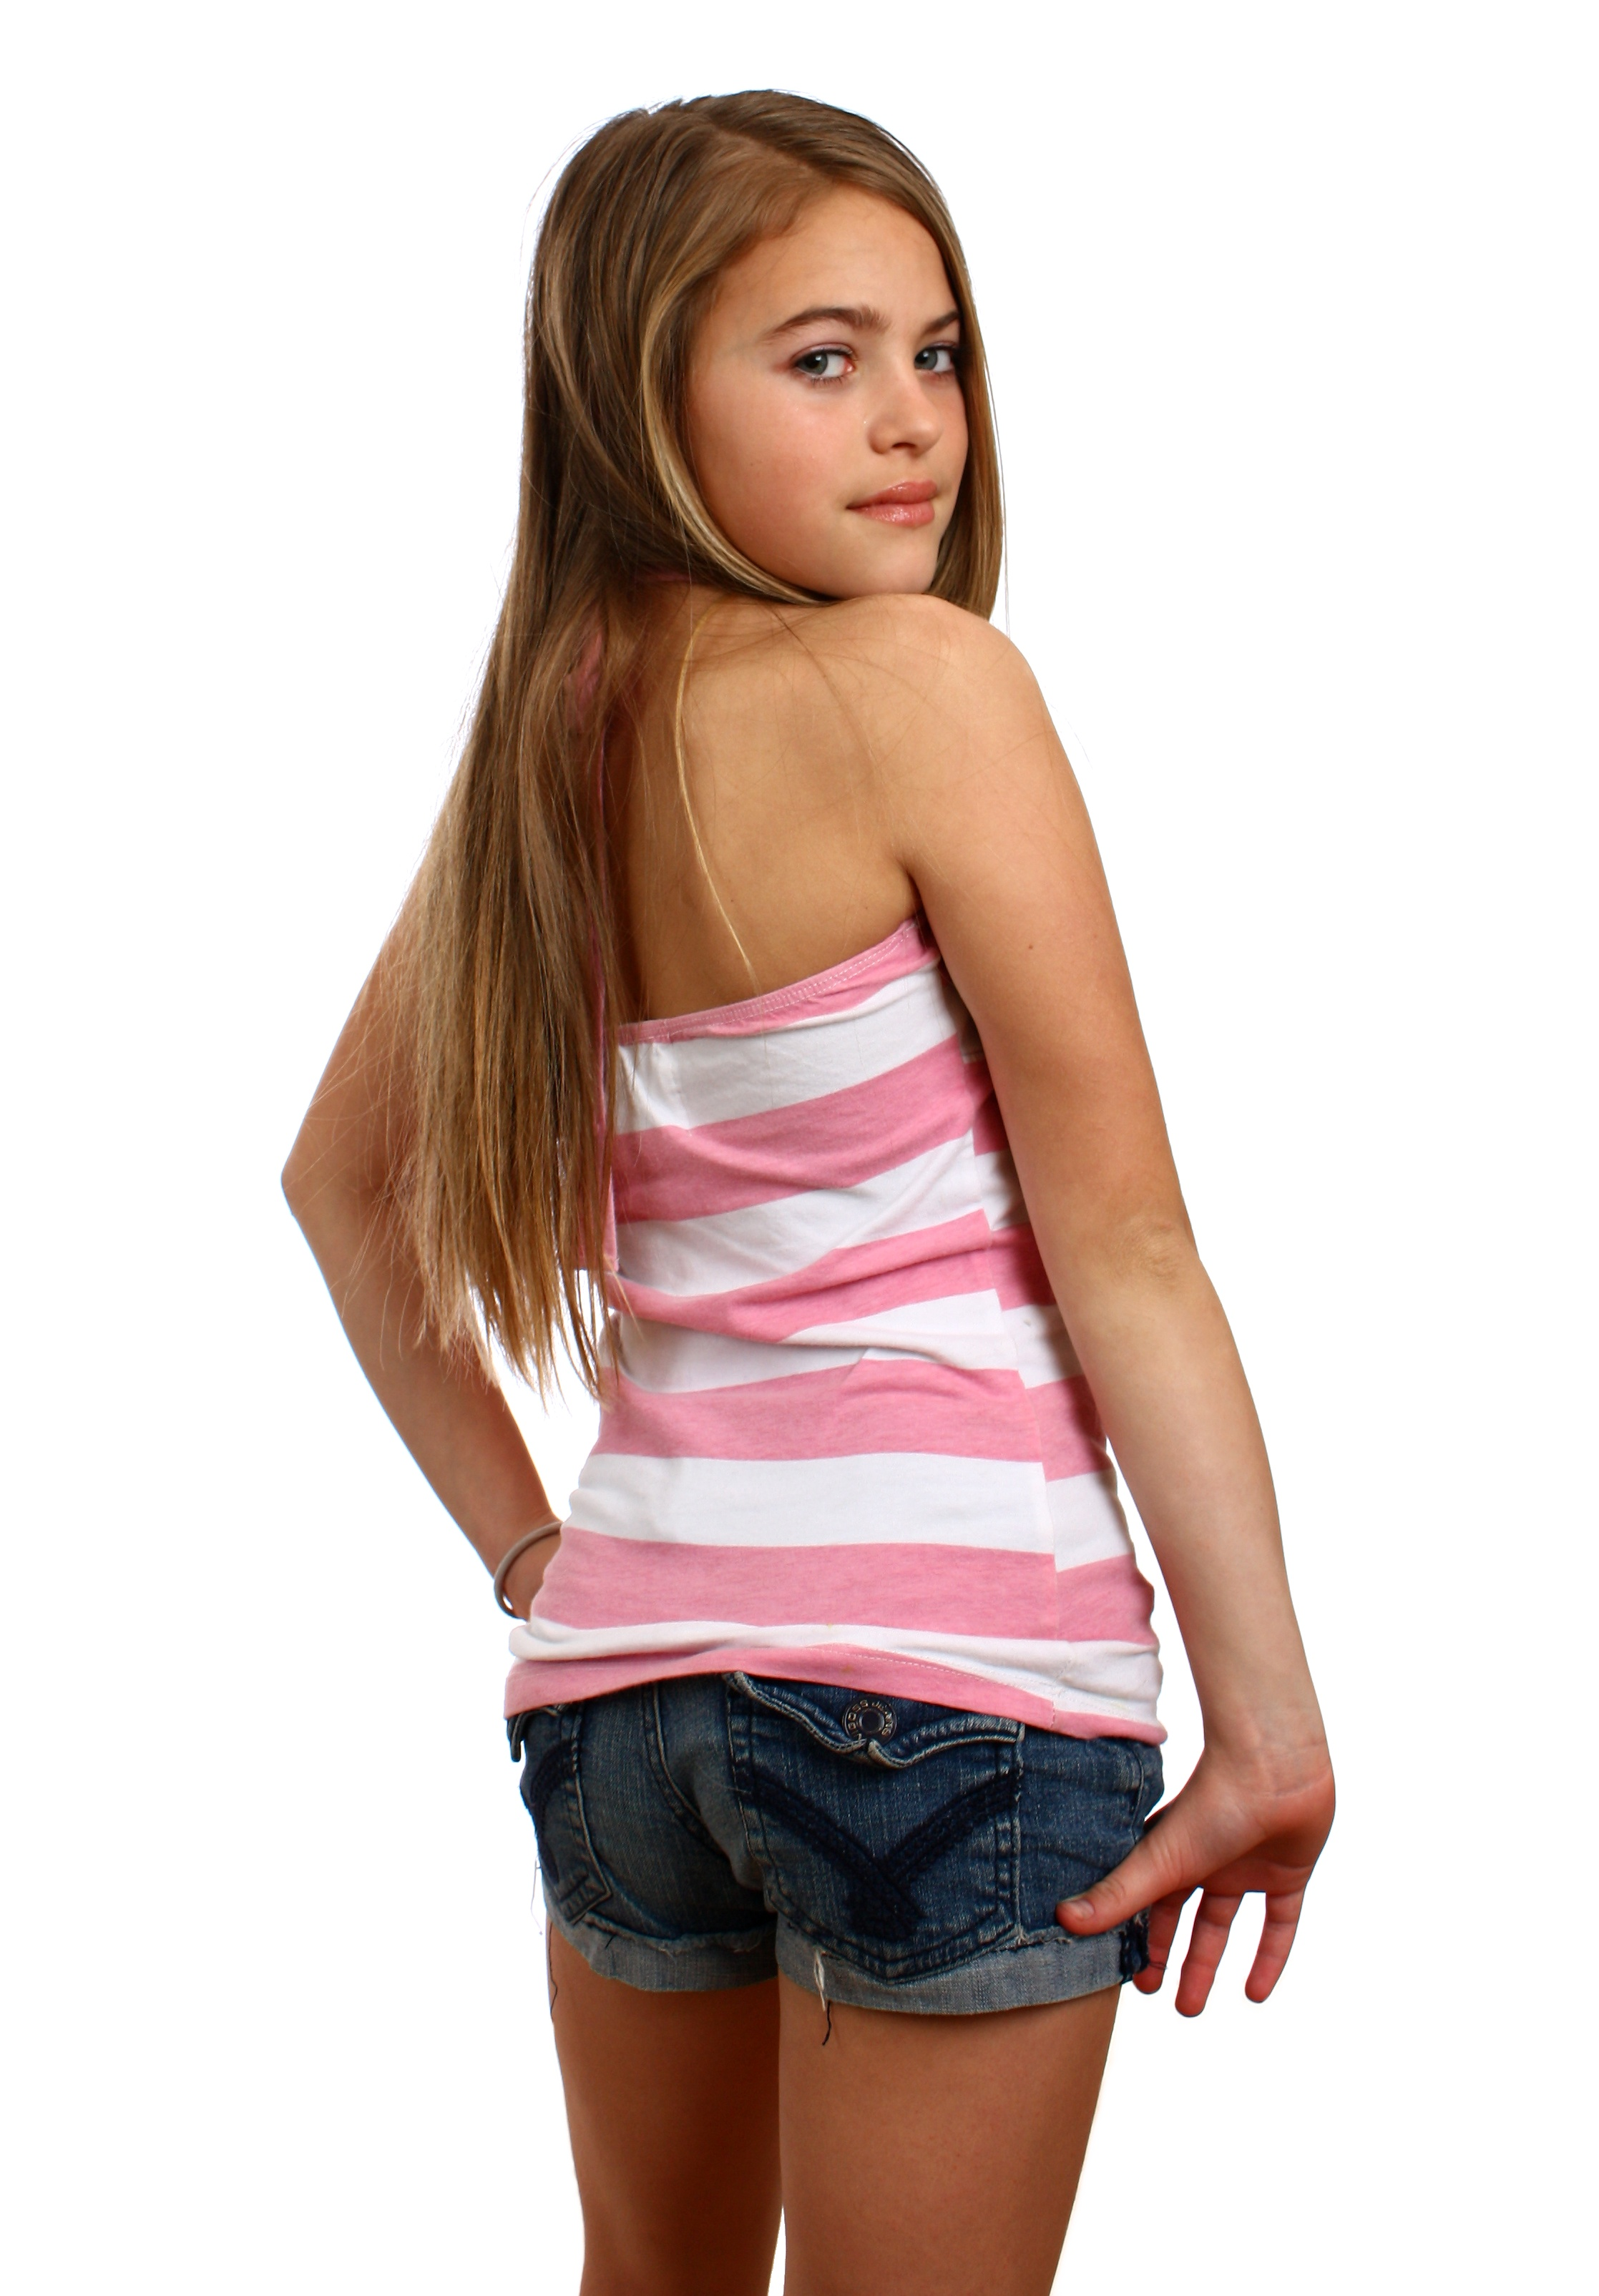 Free Photo: A Beautiful Young Girl Posing